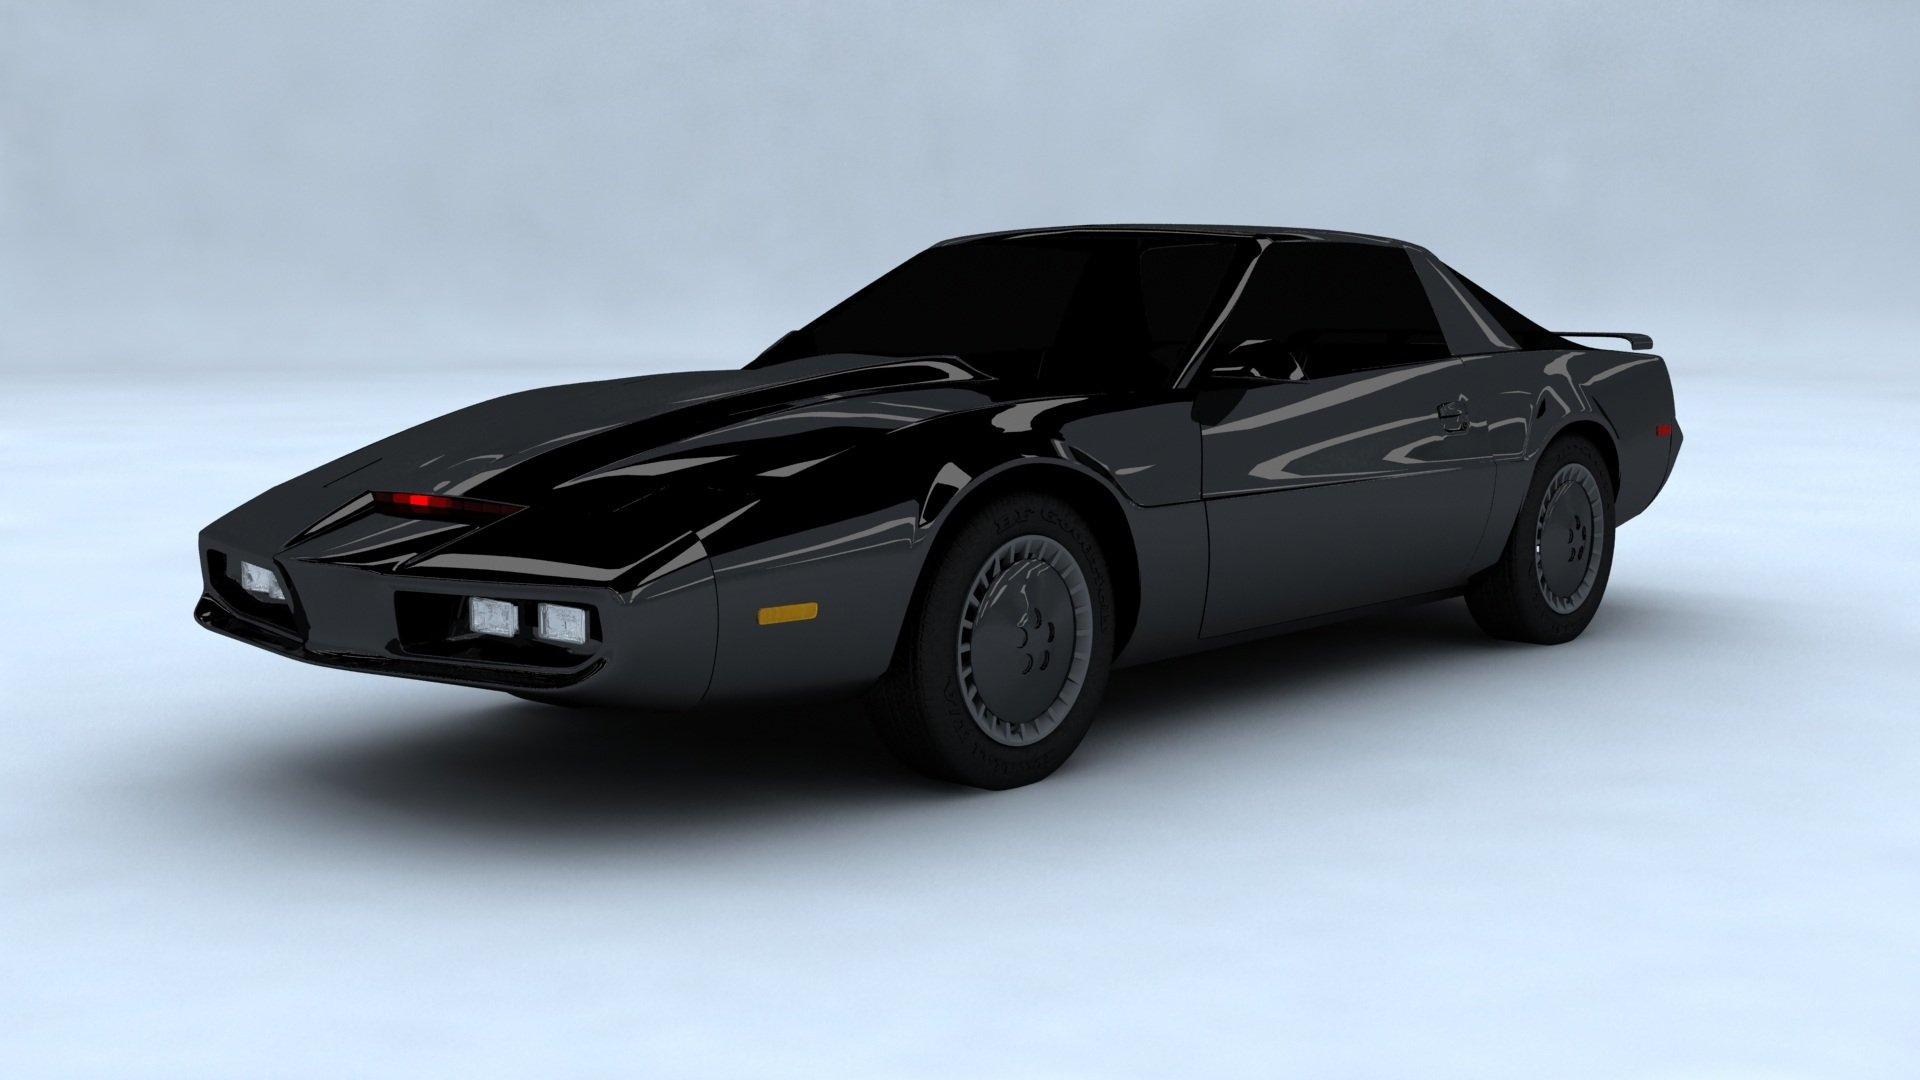 Knight Rider Wallpaper Car Wallpapersuscom 1920x1080